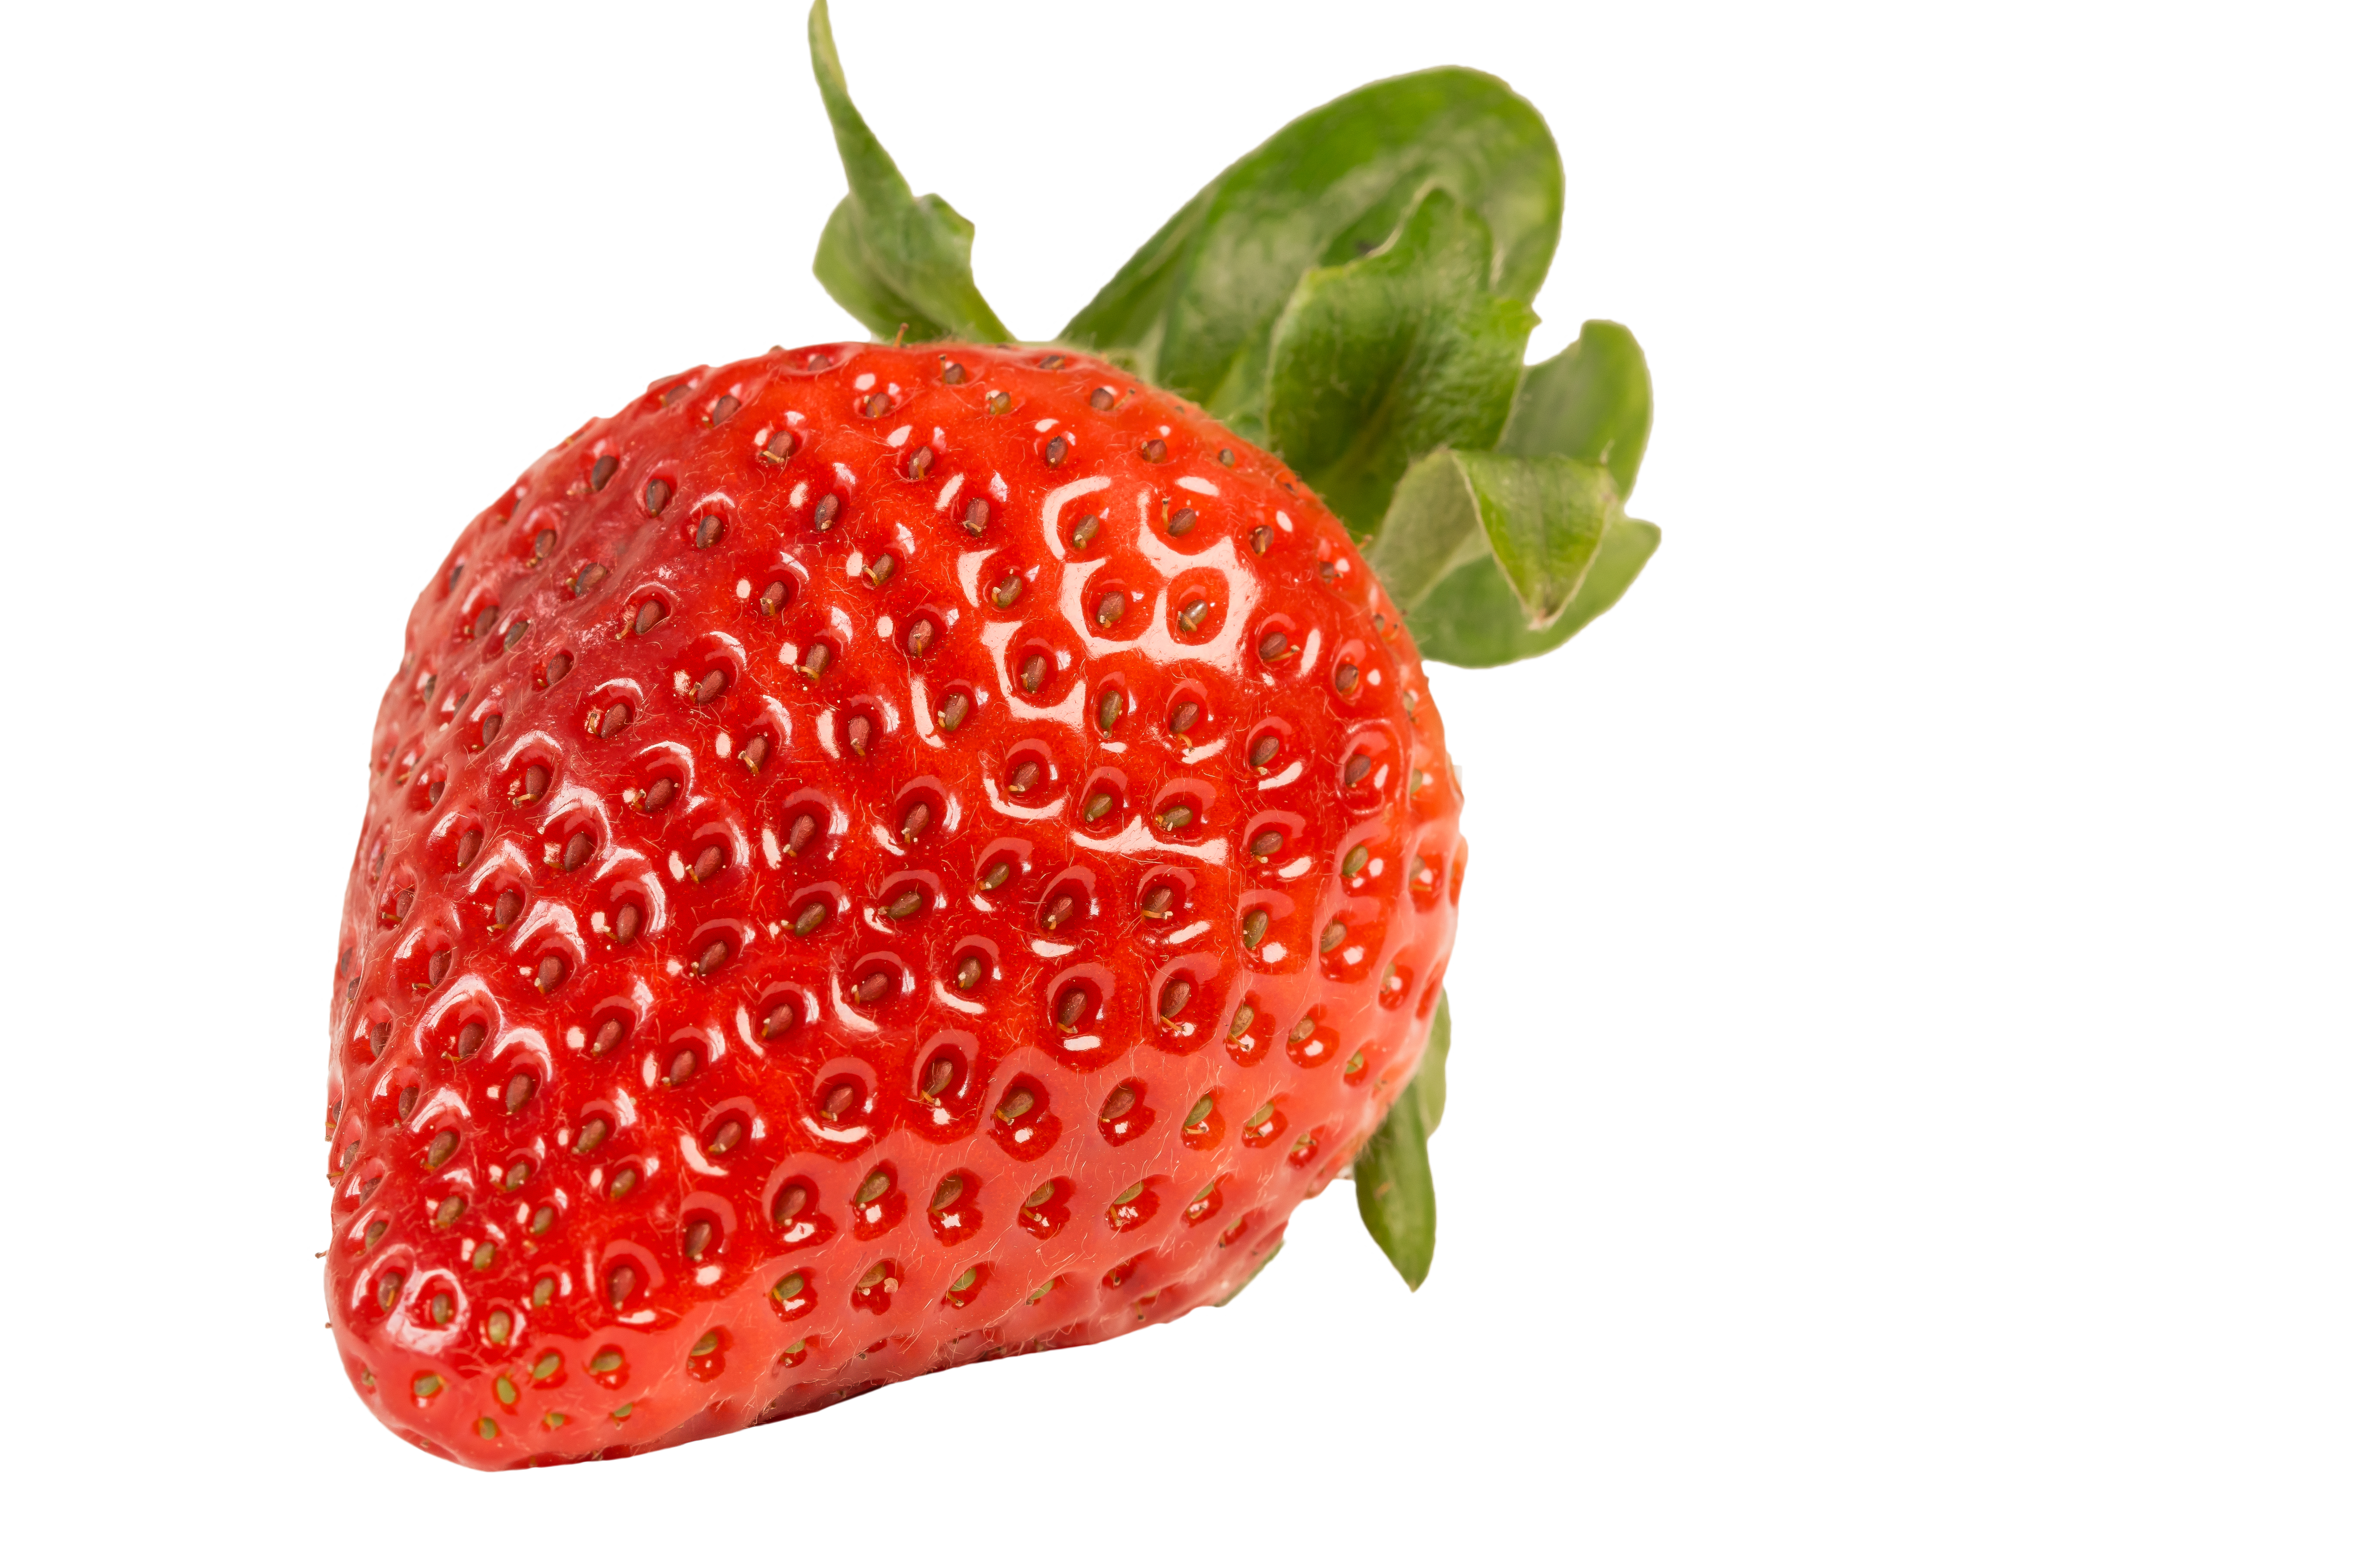 Strawberries clipart jar. Strawberry png image purepng